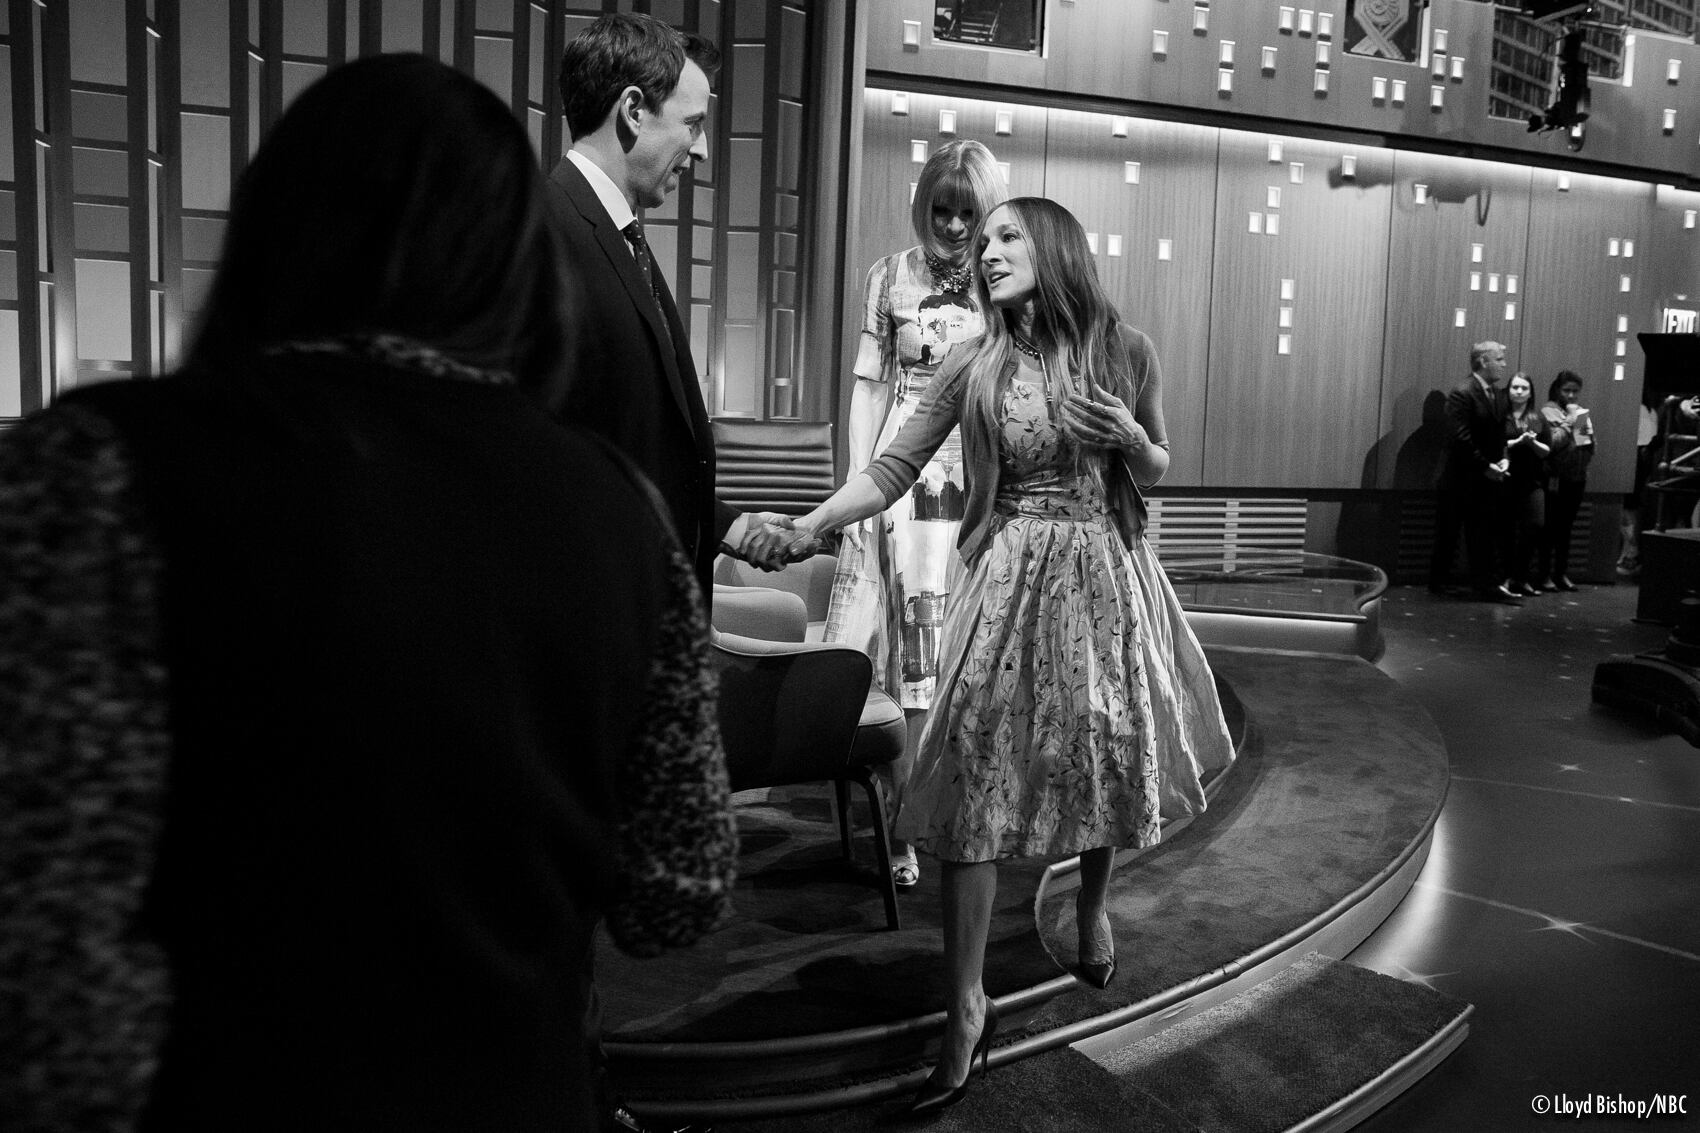 Sarah Jessica Parker and Anna Wintour on Late Night with Seth Meyers